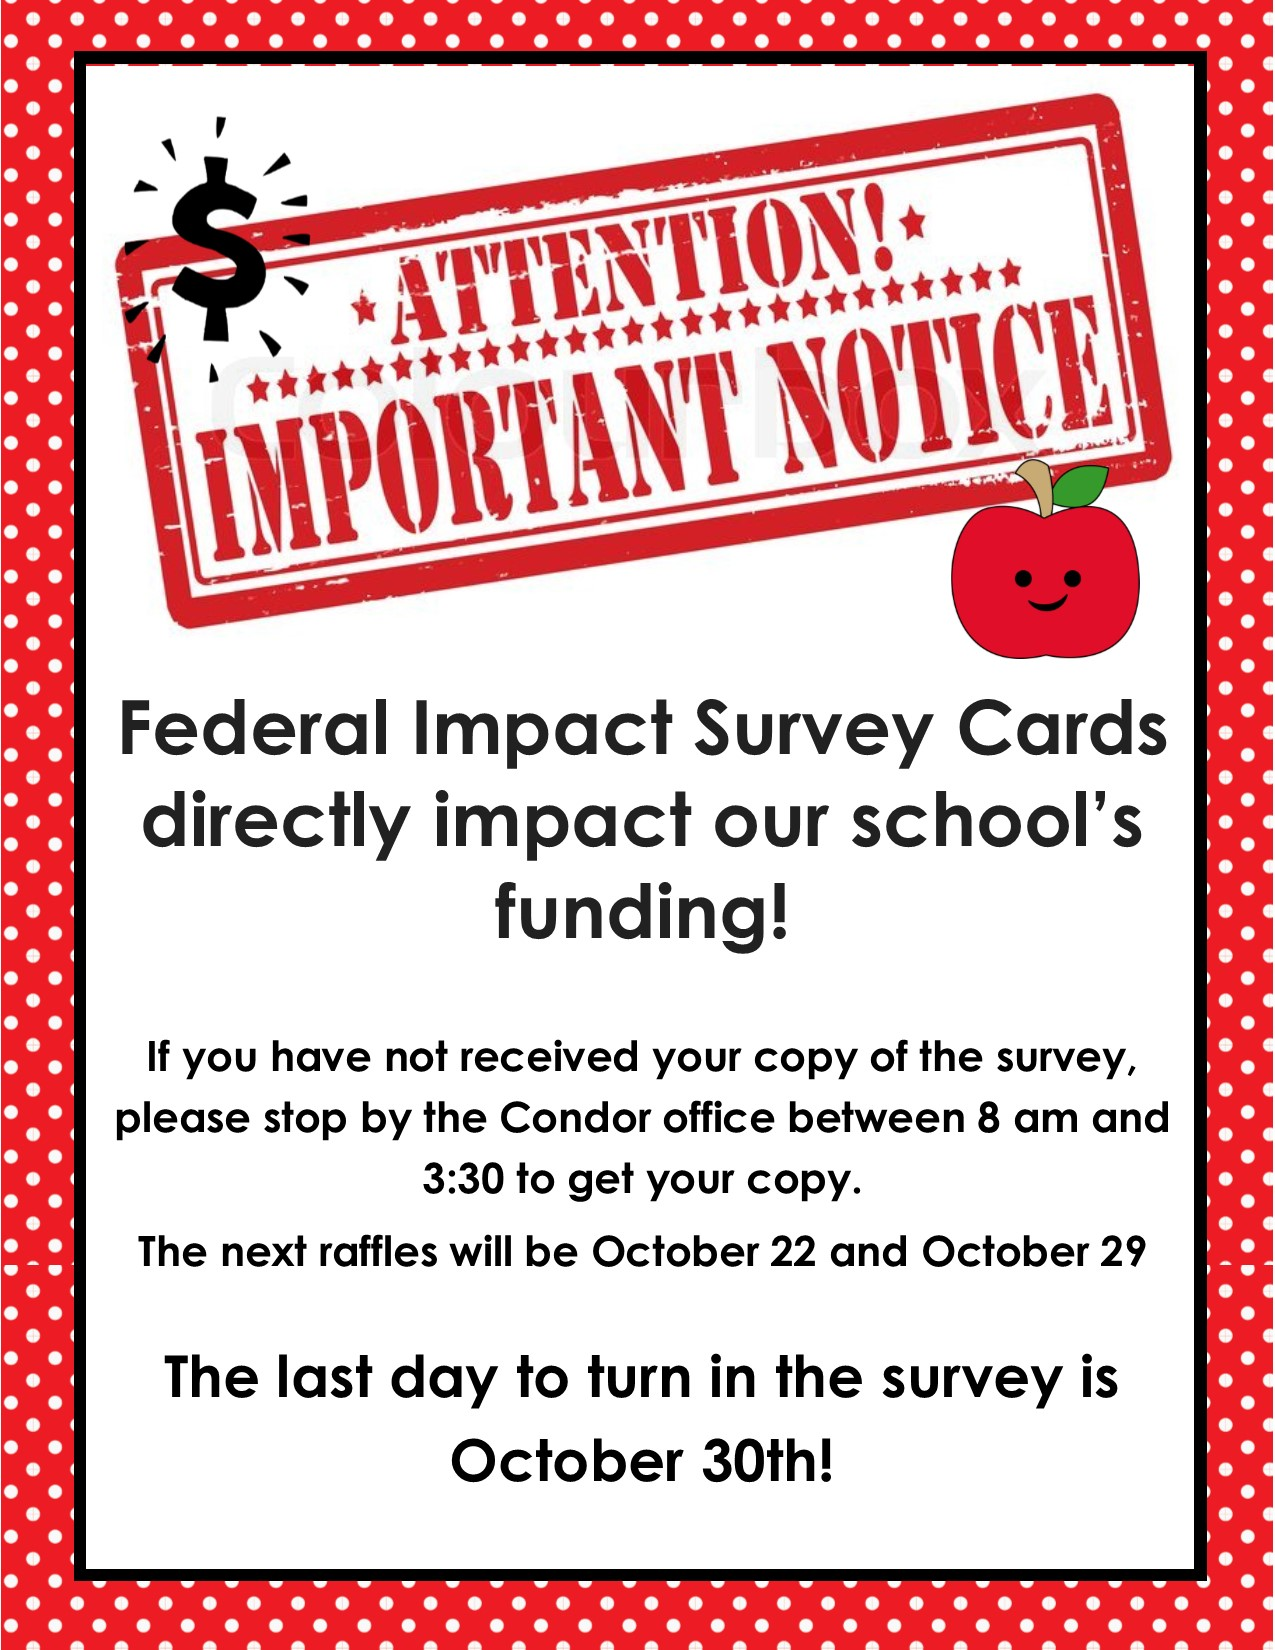 Federal Survey Cards due October 30